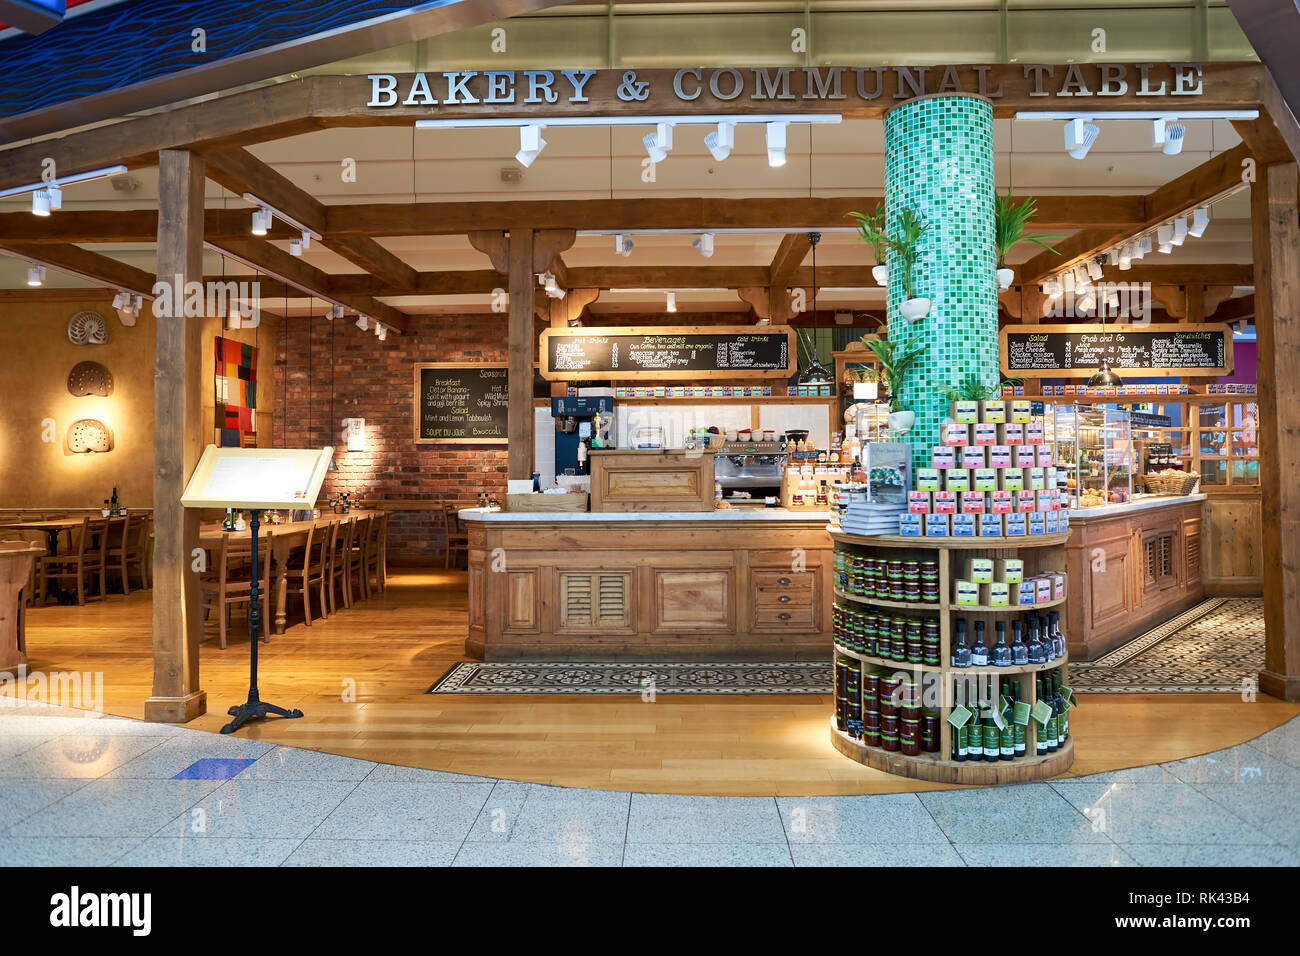 DUBAI, UAE - APRIL 08, 2016: inside of Dubai International Airport. There are a lot of restaurants, bars, cafes and shops in Dubai International Airpo - Stock Image